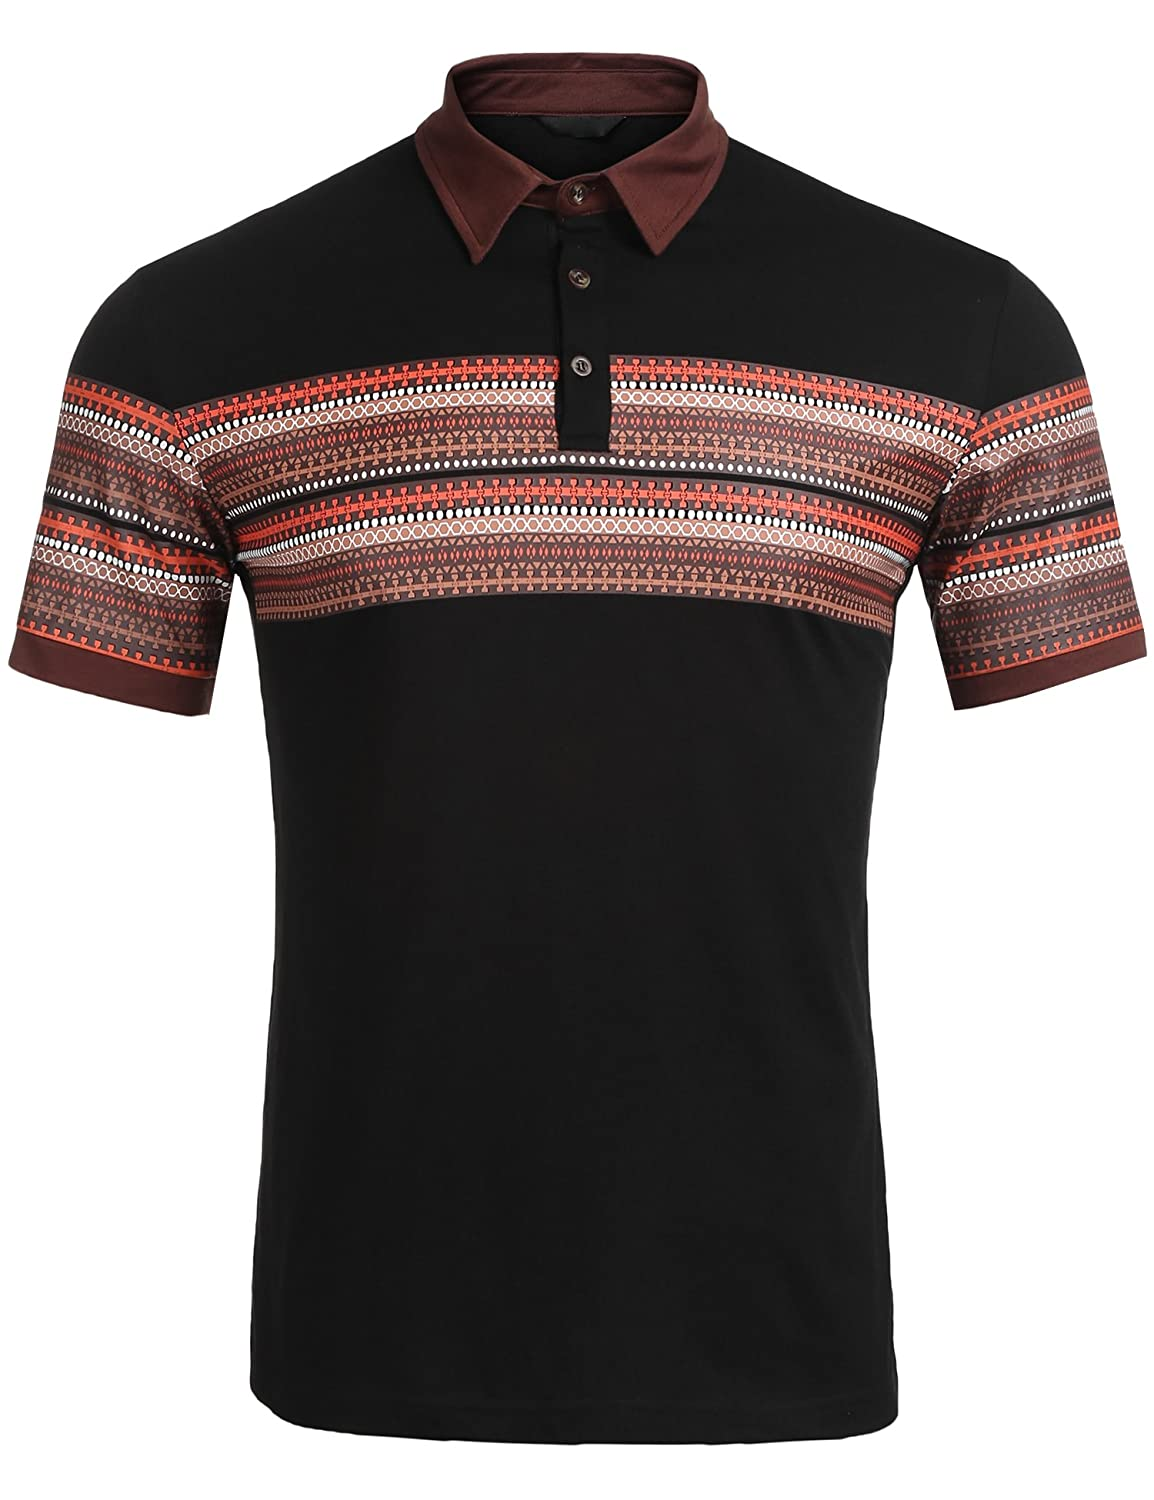 f2786def6d7563 Premium Pique Polo At Decent Price  High quality shirts with comparable  quality to the other name brand polo shirts in your wardrobe.